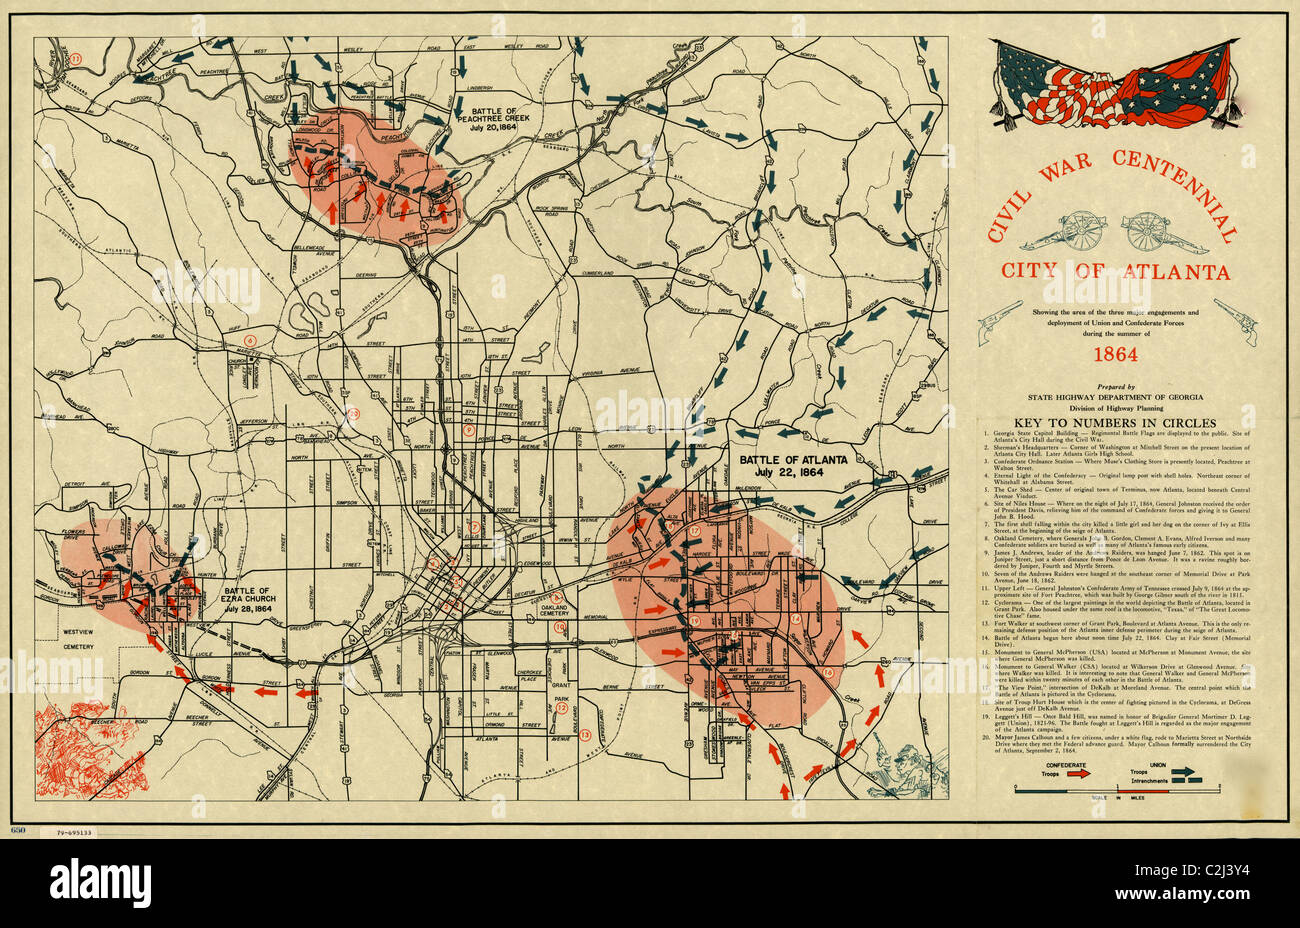 City of Atlanta, Civil War Deployments - Stock Image